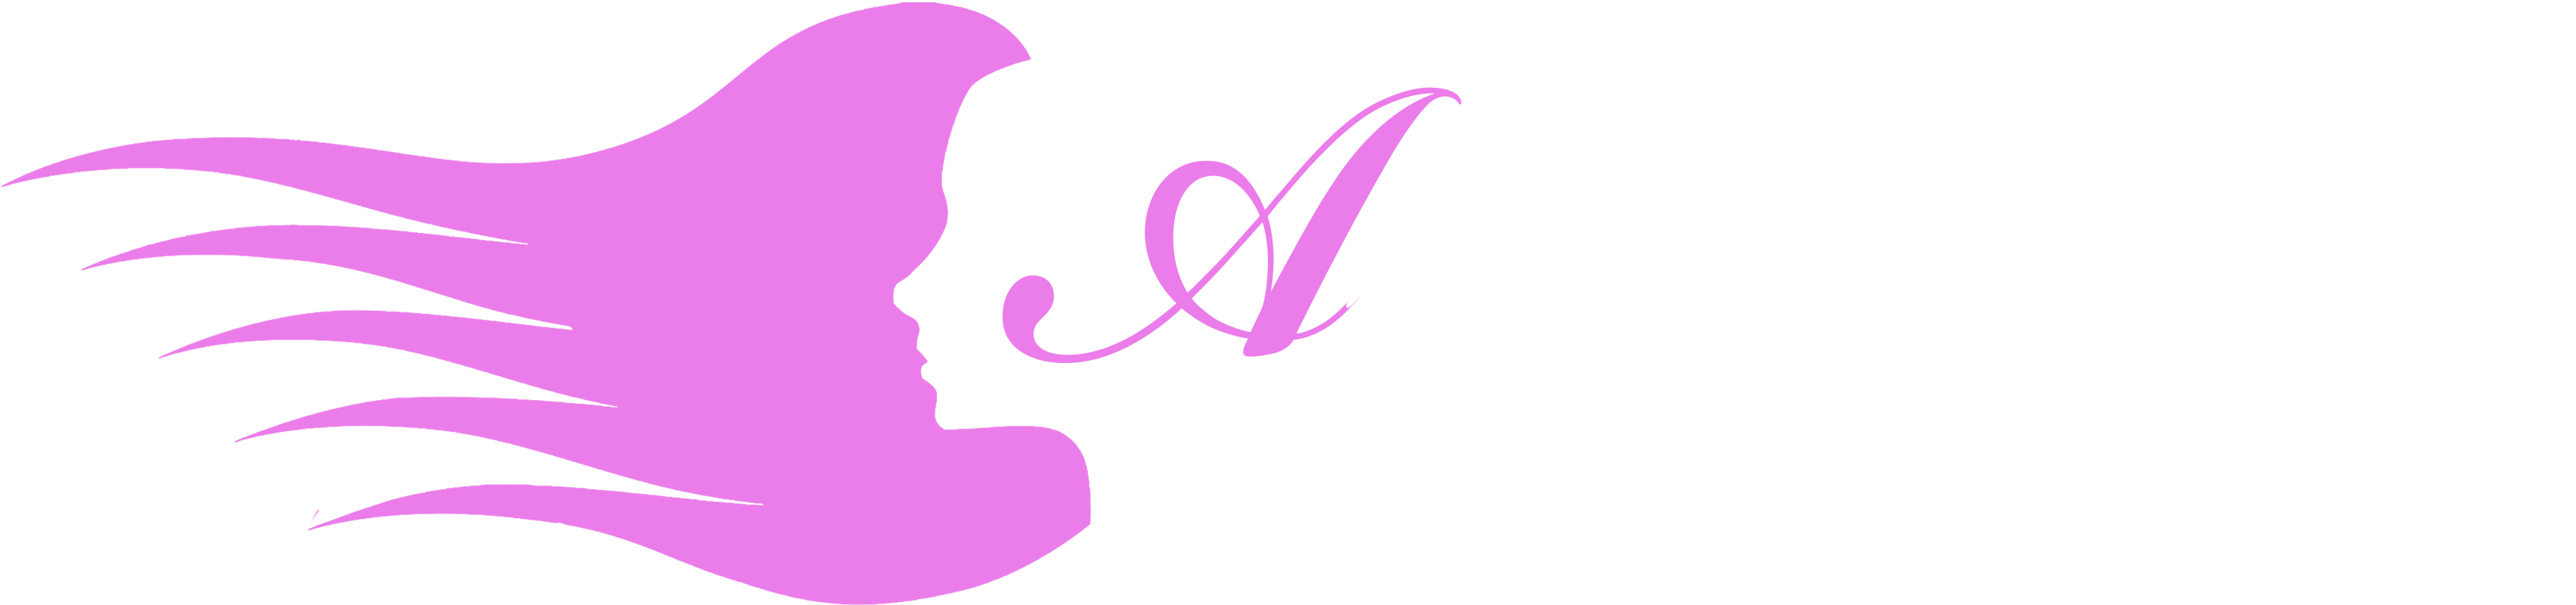 Amritha Beauty Parlour Logo Png Clipart Full Size Clipart 1042216 Pinclipart